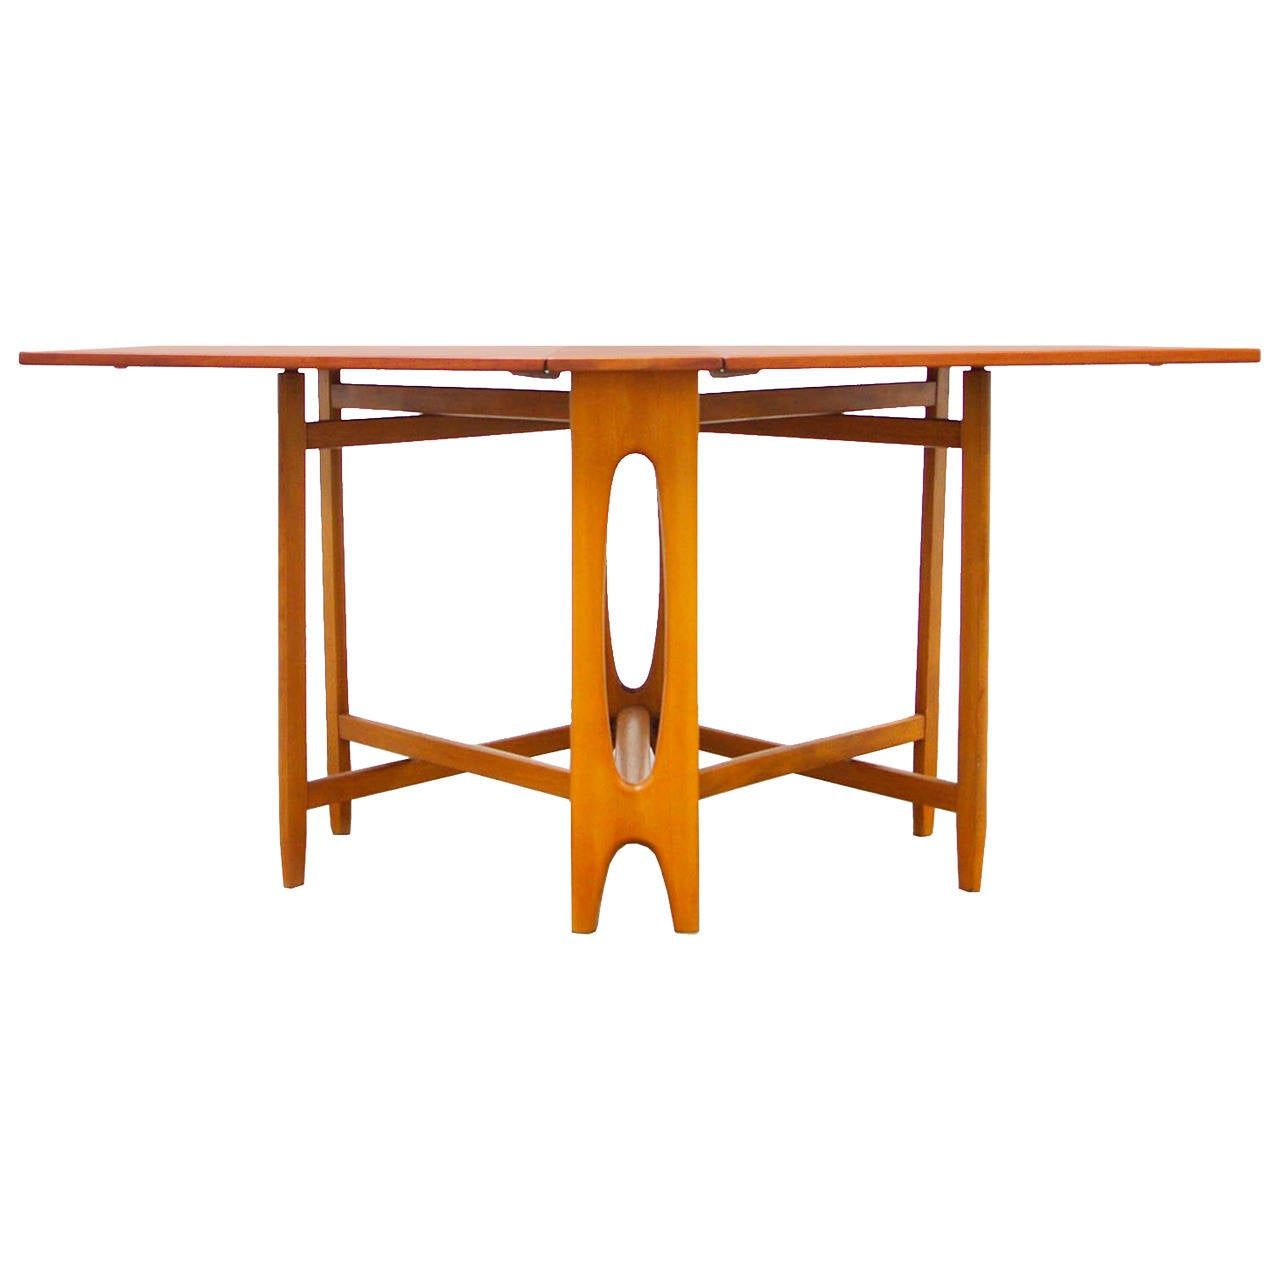 id f mid century kitchen table Gateleg Dining Table Danish Mid Century Modern Design 1